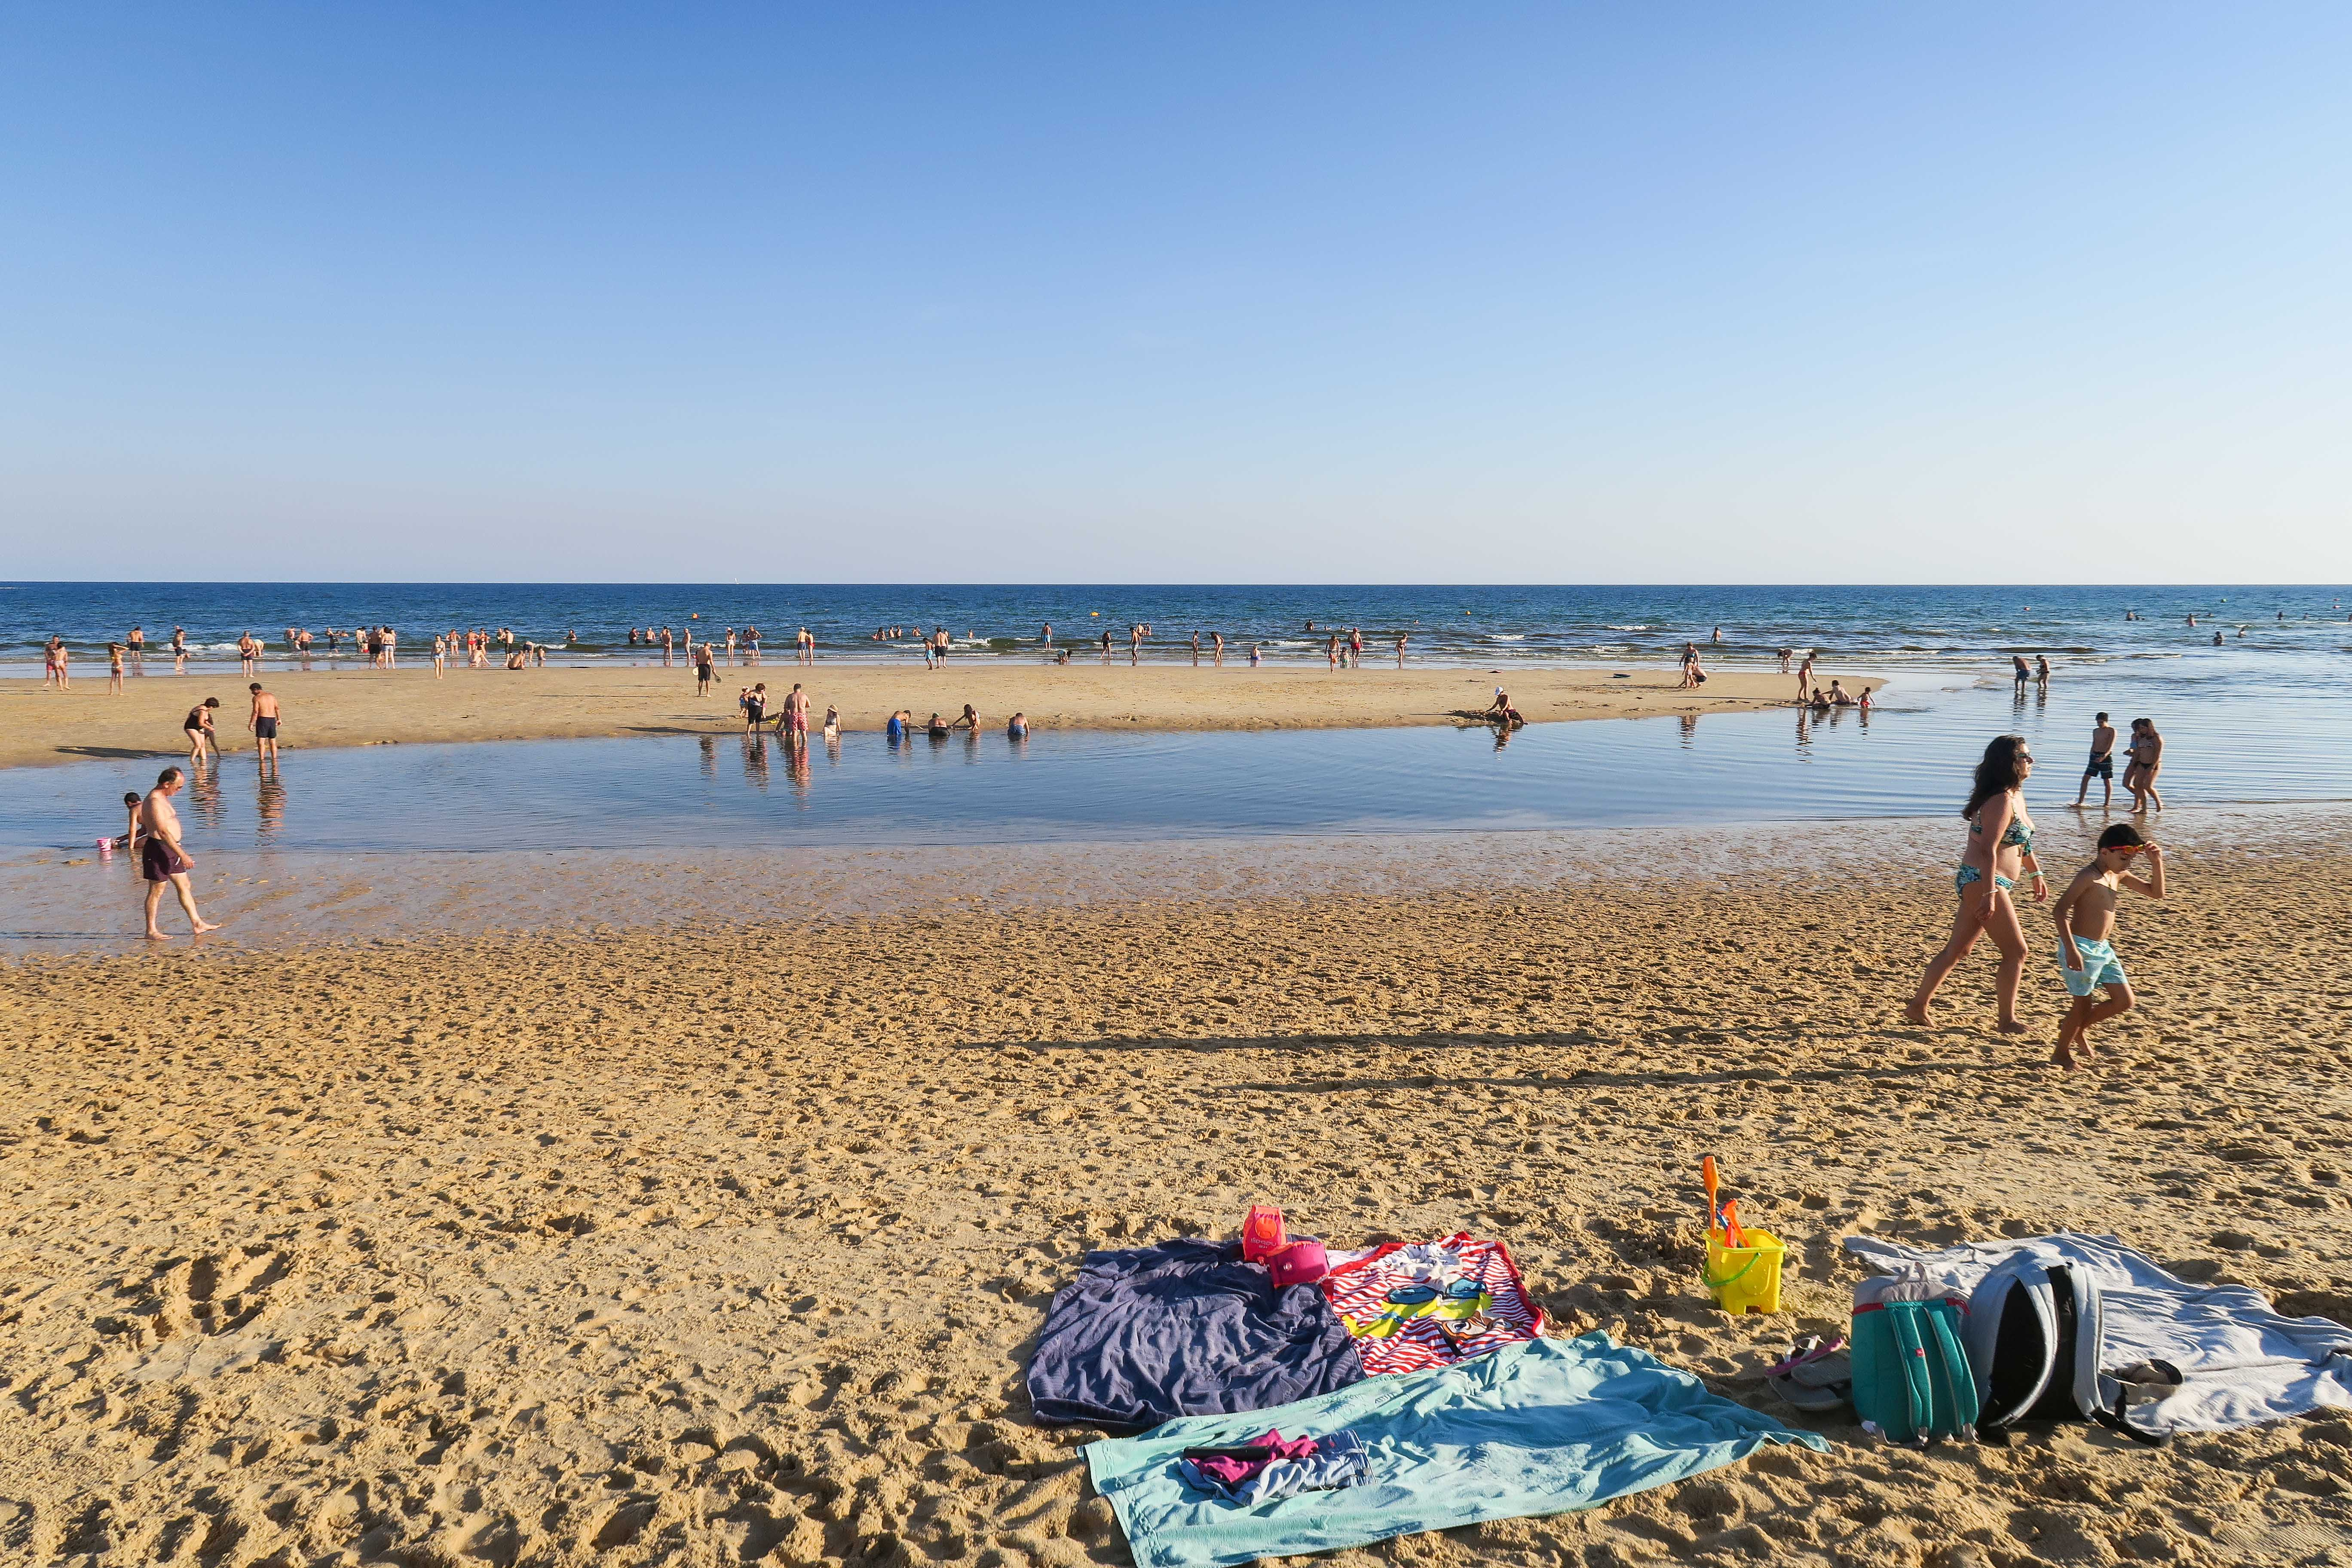 Portugal beaches. Travel diary & blog by Rosie Andre (wanderlust, photo, photography, beach, plage, plaia, guide, algarve, day trip, advice, where to go, adventure, explore, destination, europe, location, holiday, summer, vacation, advice)